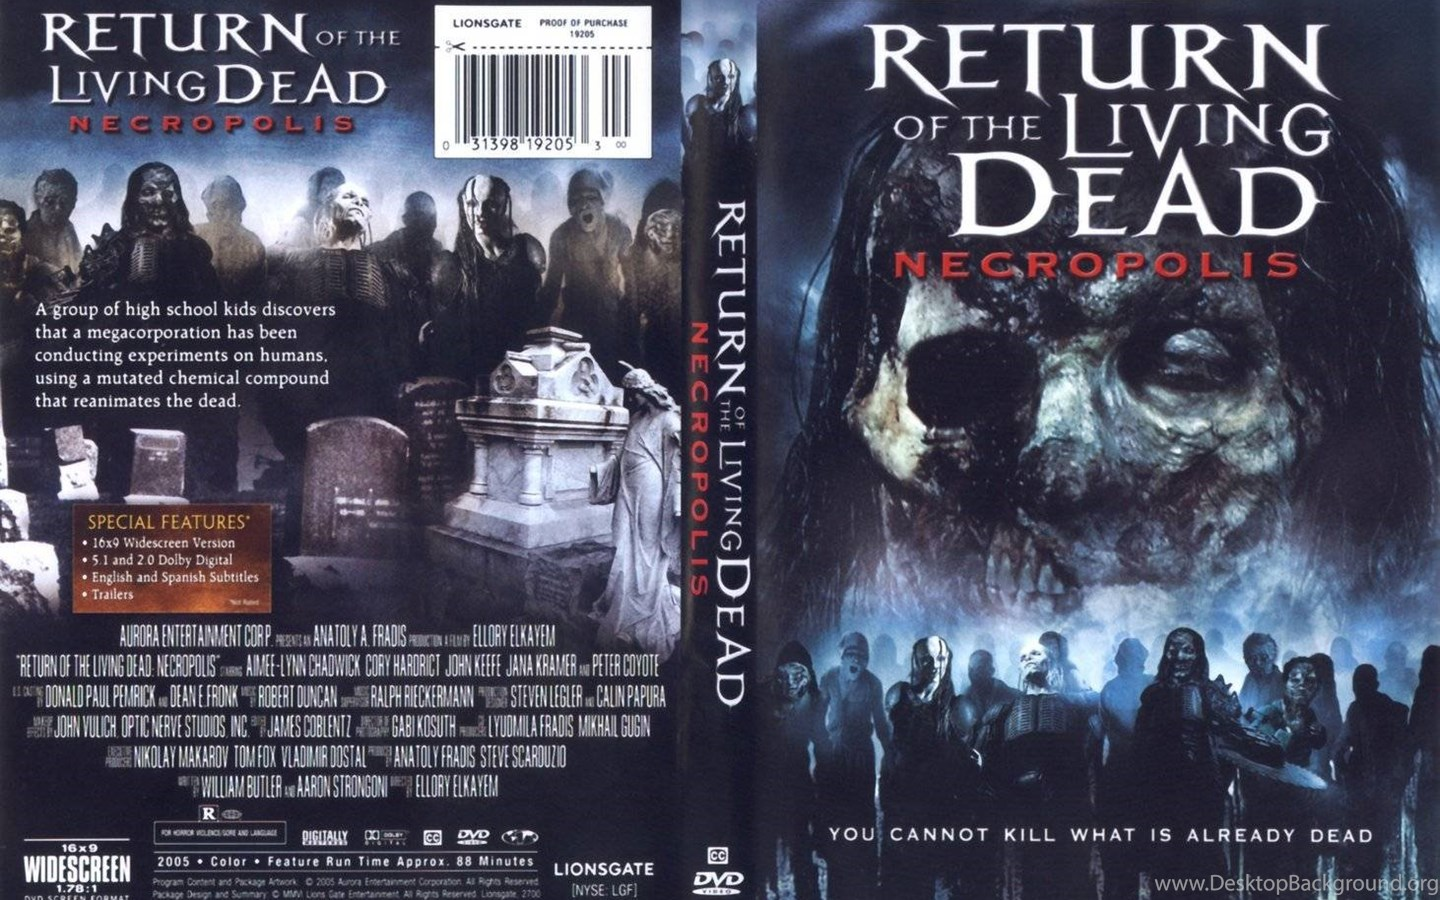 Return Of The Living Dead Necropolis Dvd Cover Zombies Images, Photos, Reviews